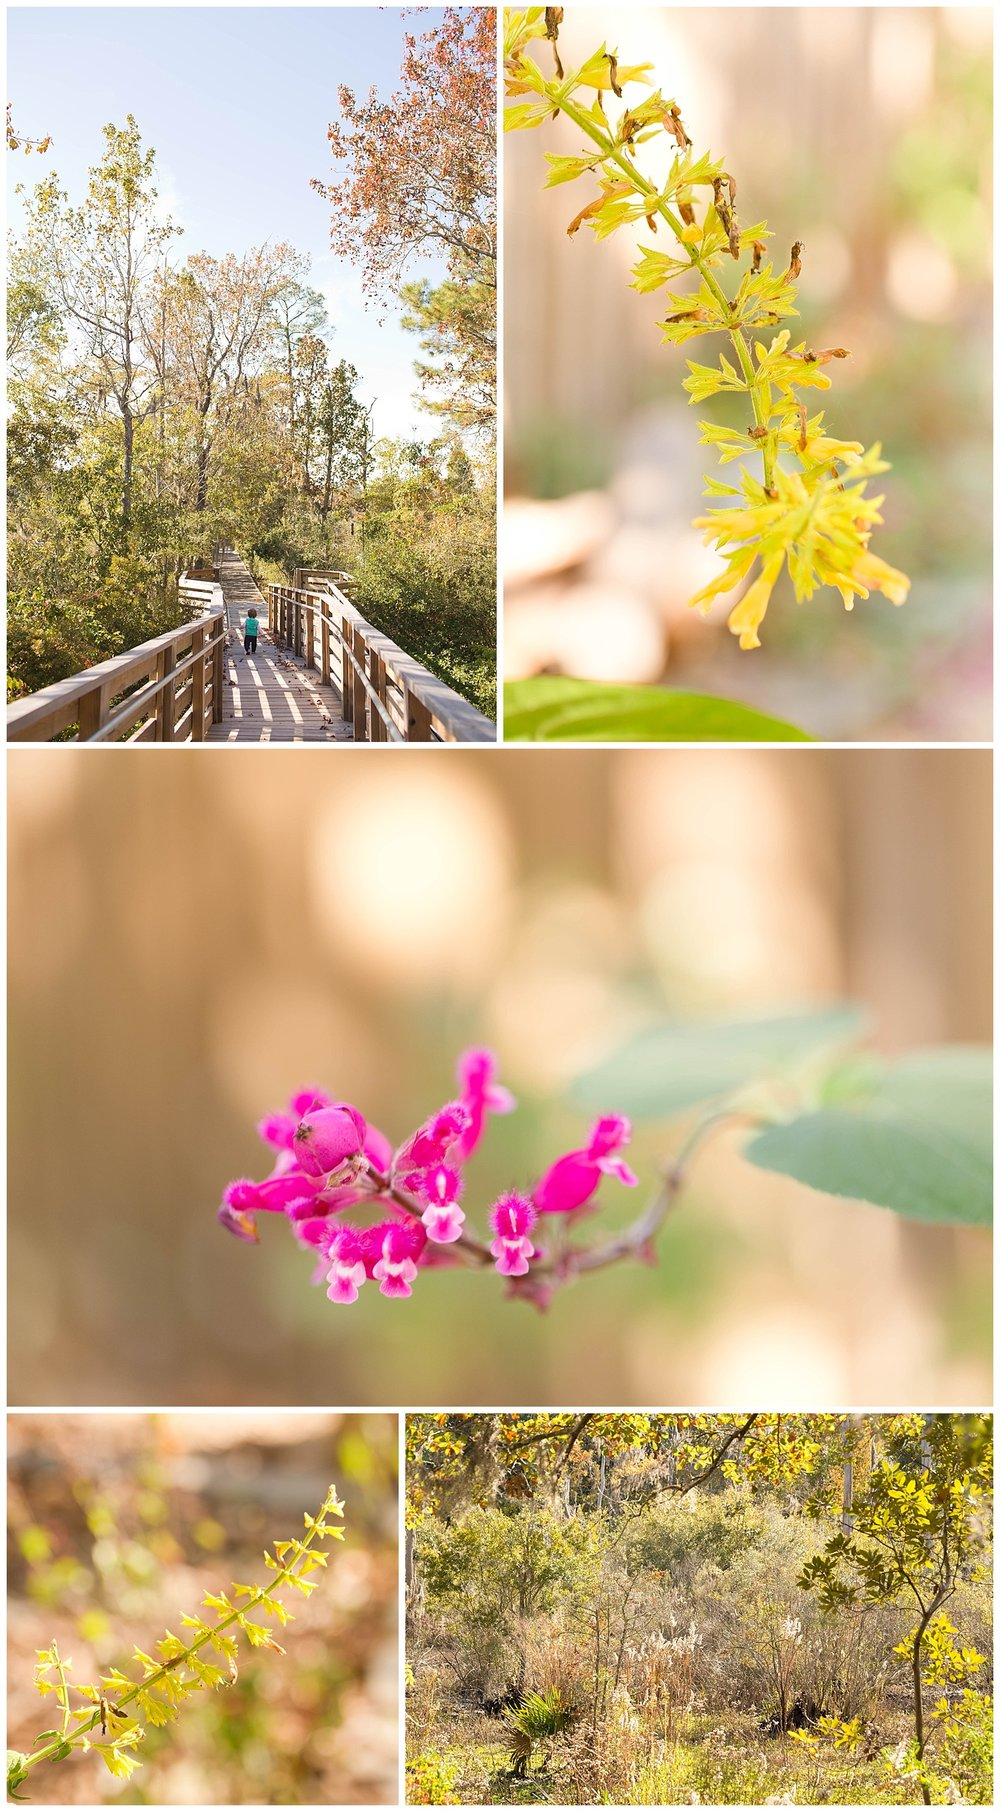 flowers and trees in nature, Pascagoula, Mississippi